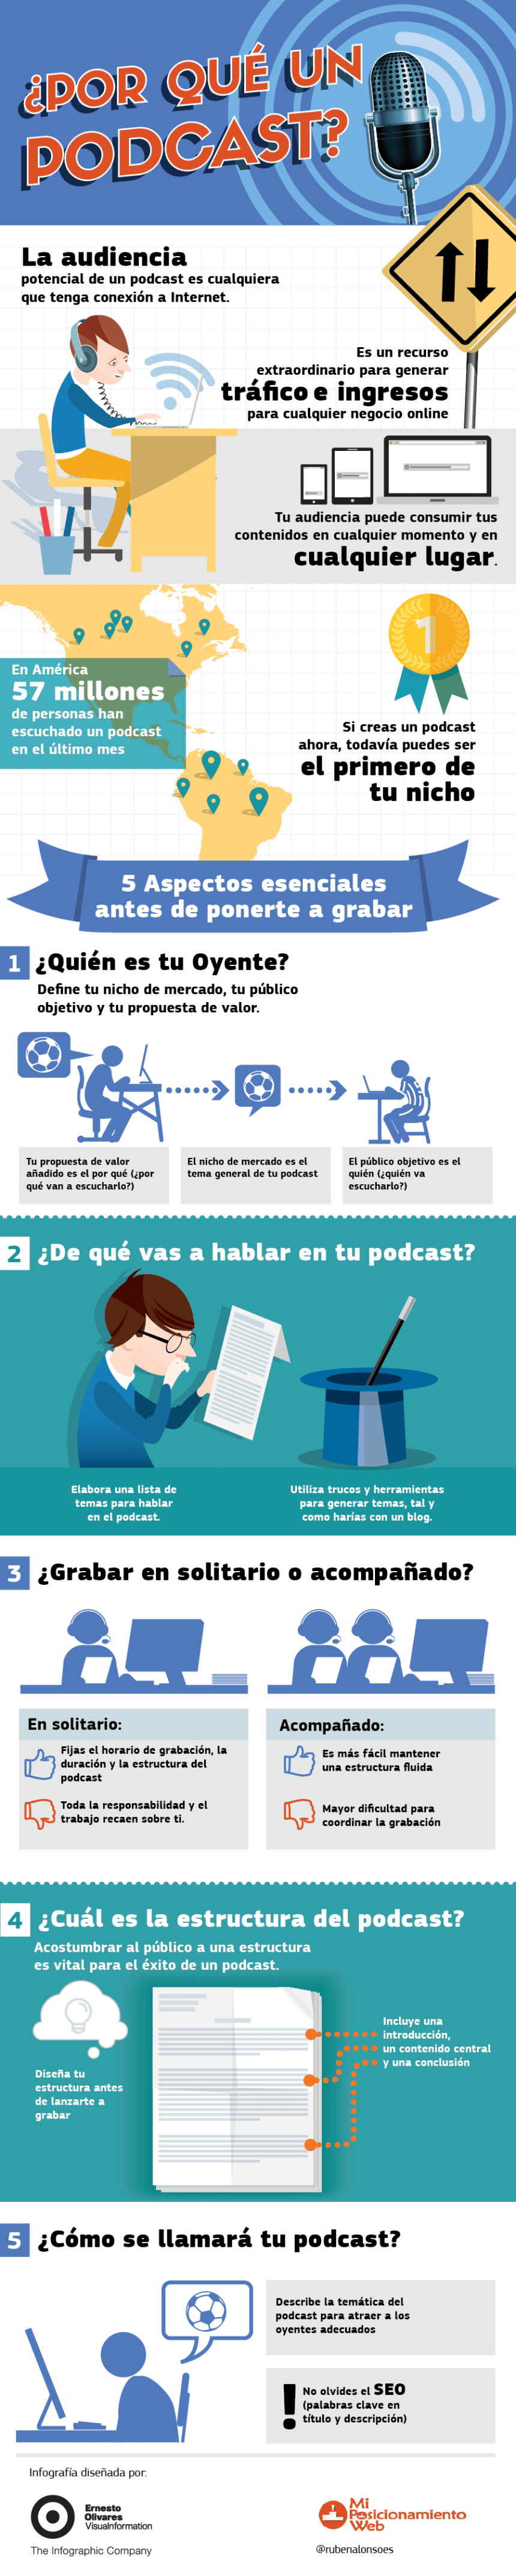 ¿Por qué un Podcast?